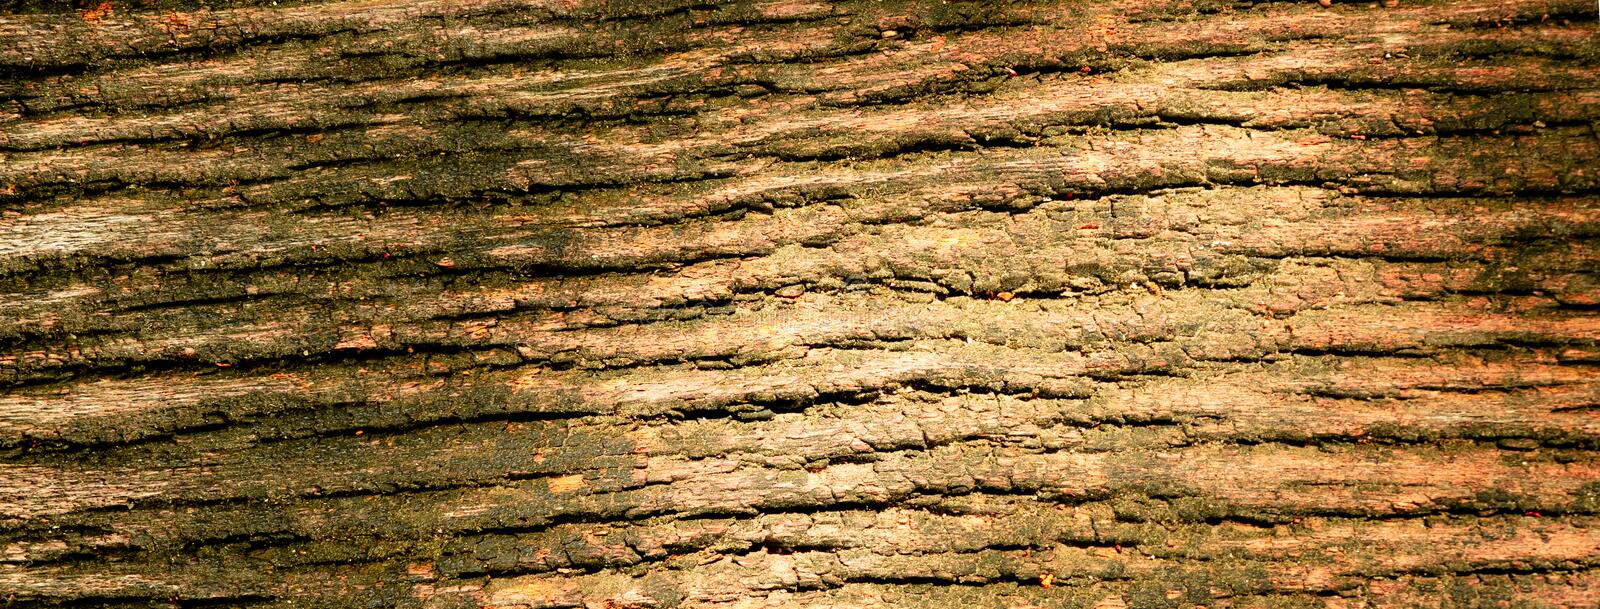 Texture of brown tree bark. stock photography